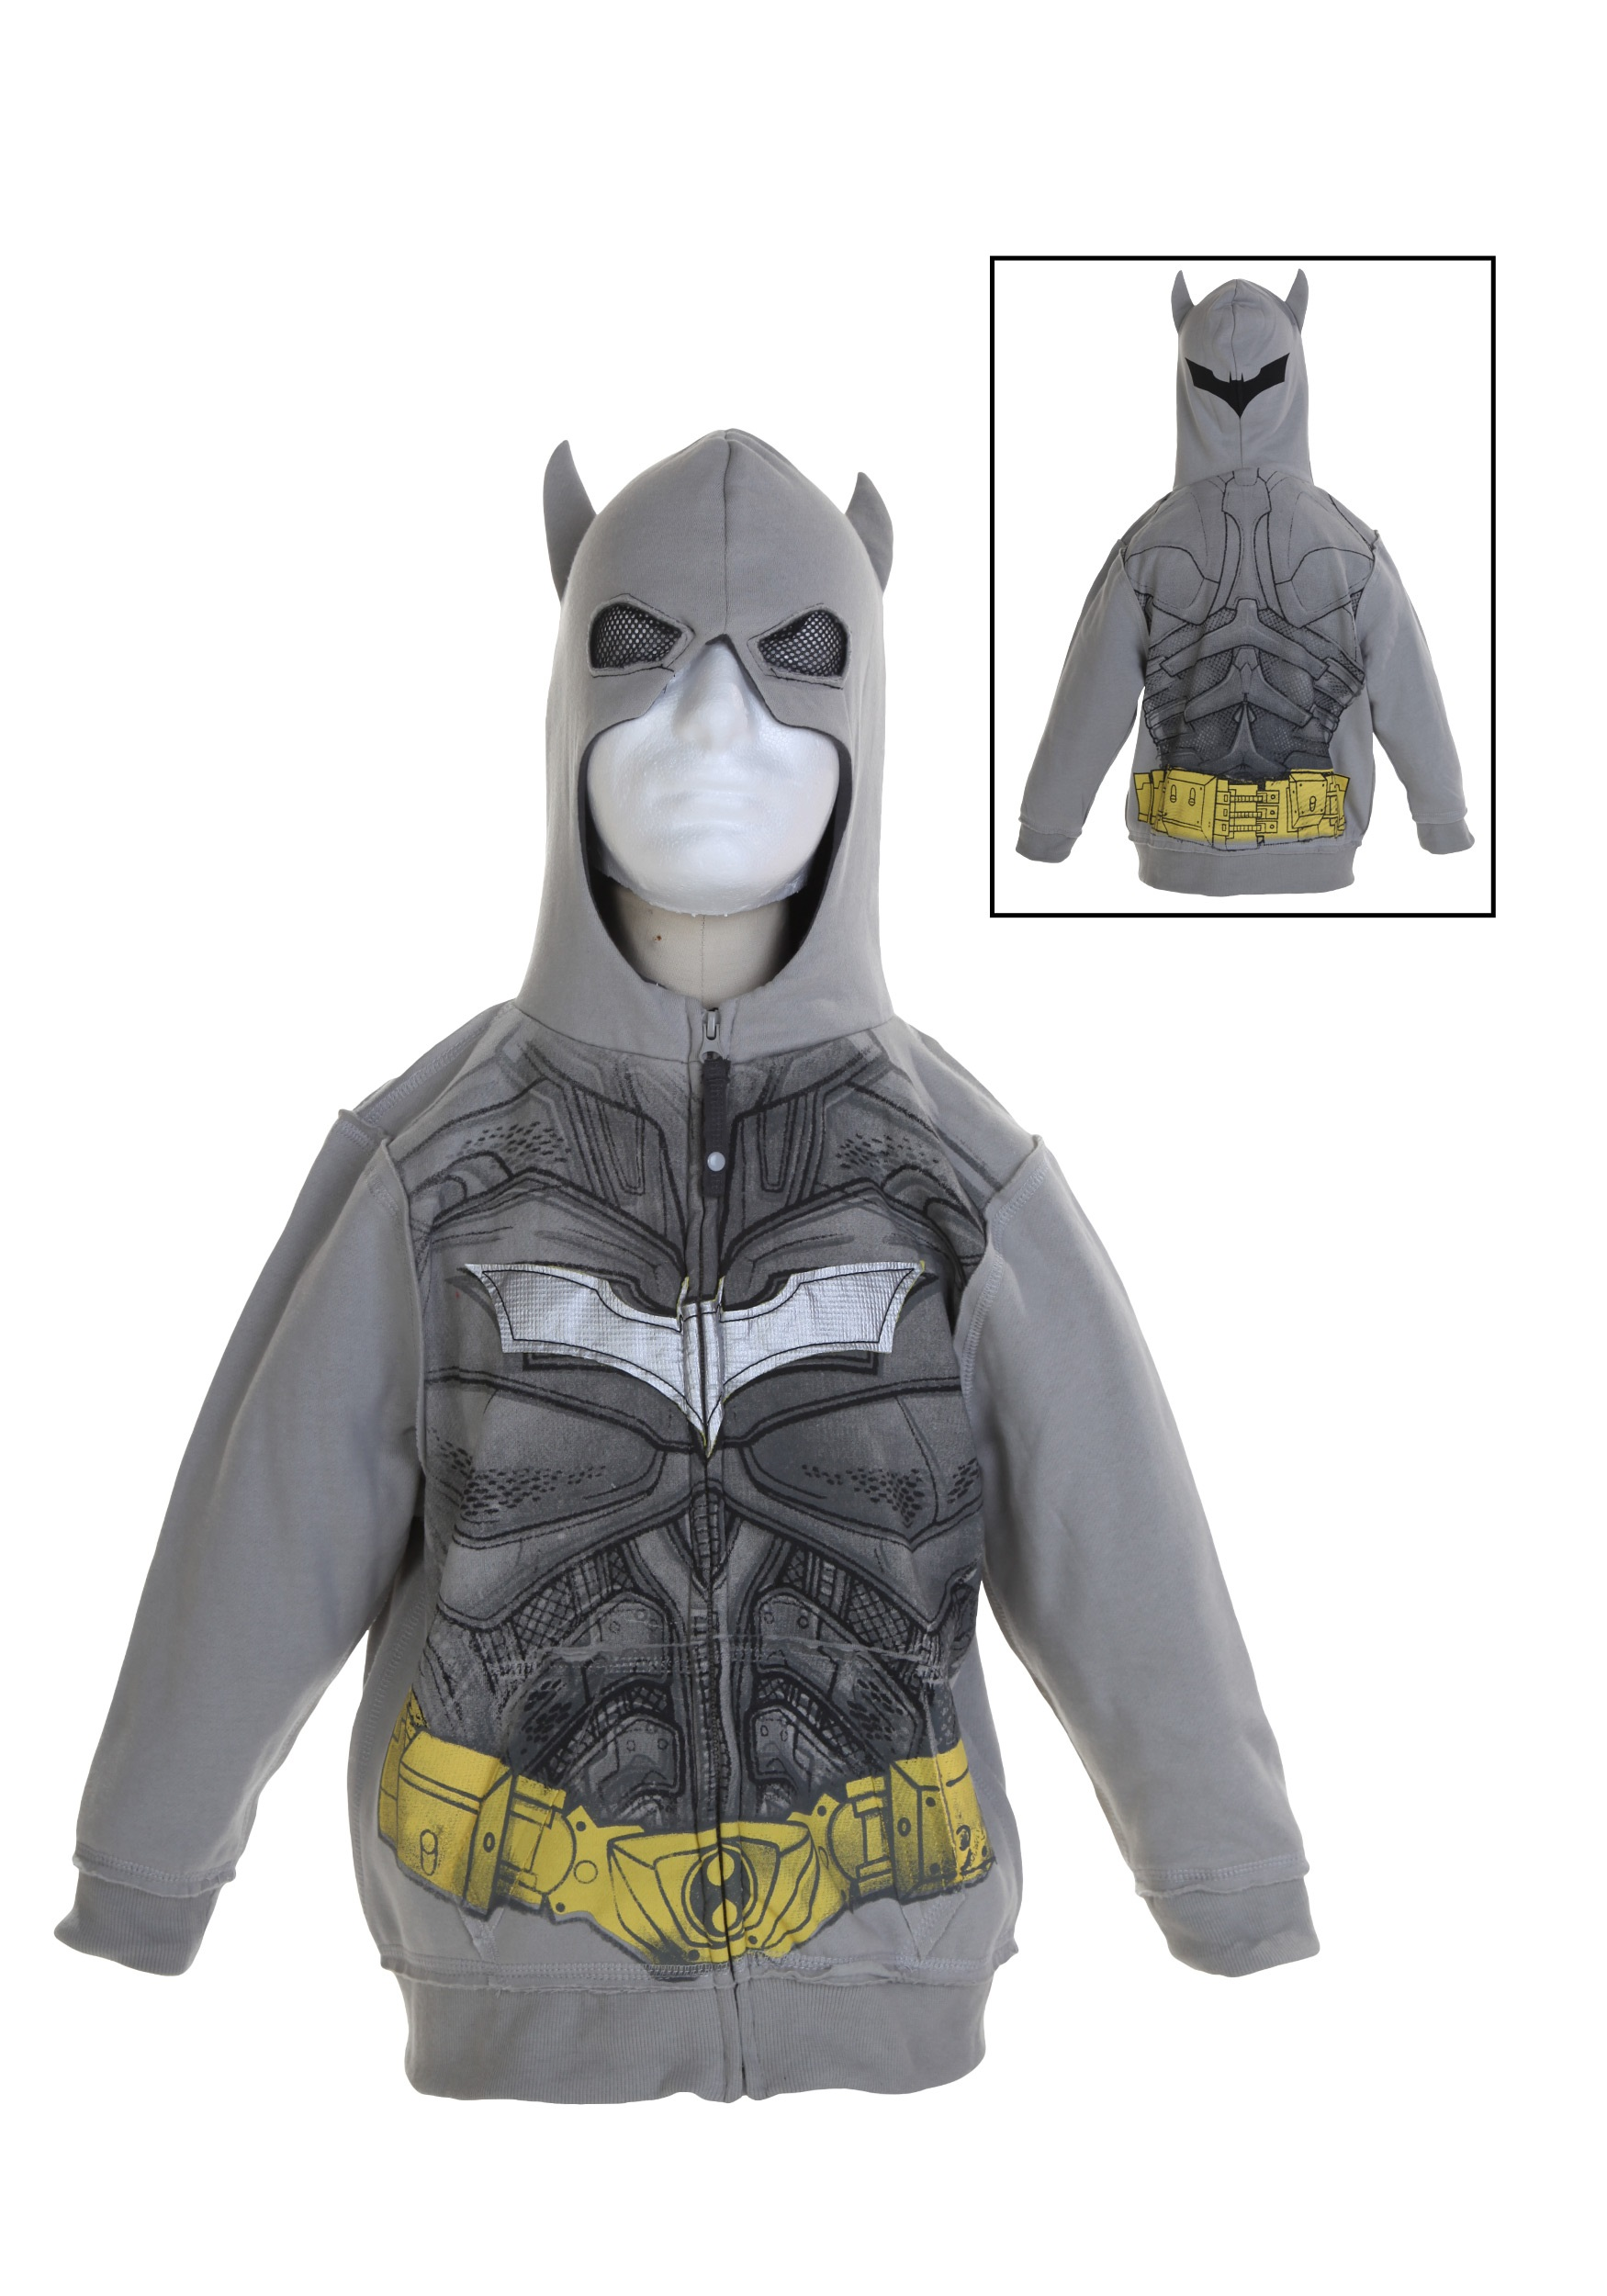 Toddler Silver Batman Costume Hoodie  sc 1 st  Halloween Costumes & Toddler Silver Batman Costume Hoodie - Halloween Costumes